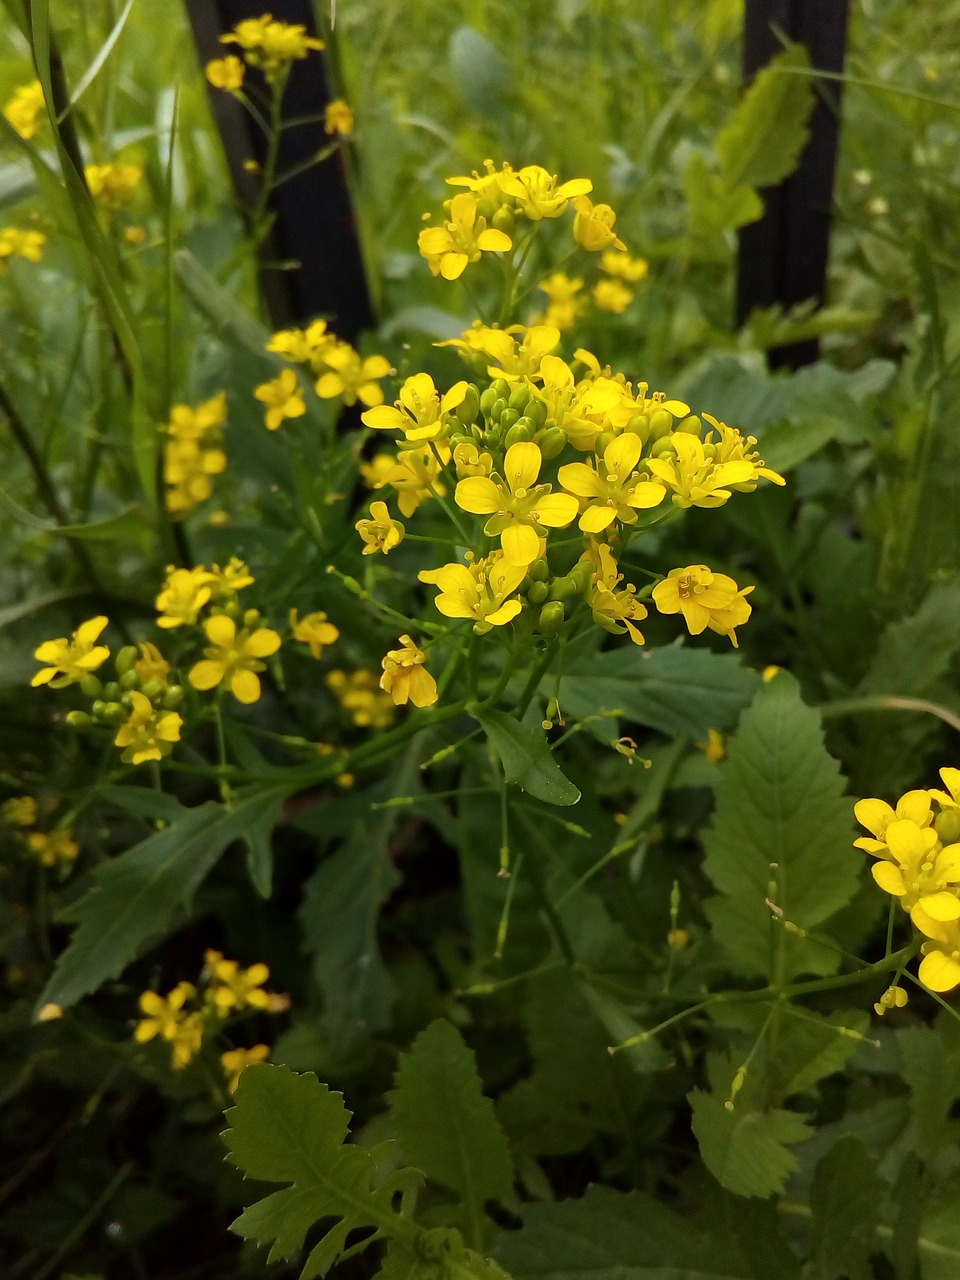 Winter Cressmedicinal Plantyellowfinesummer Flowers Free Photo